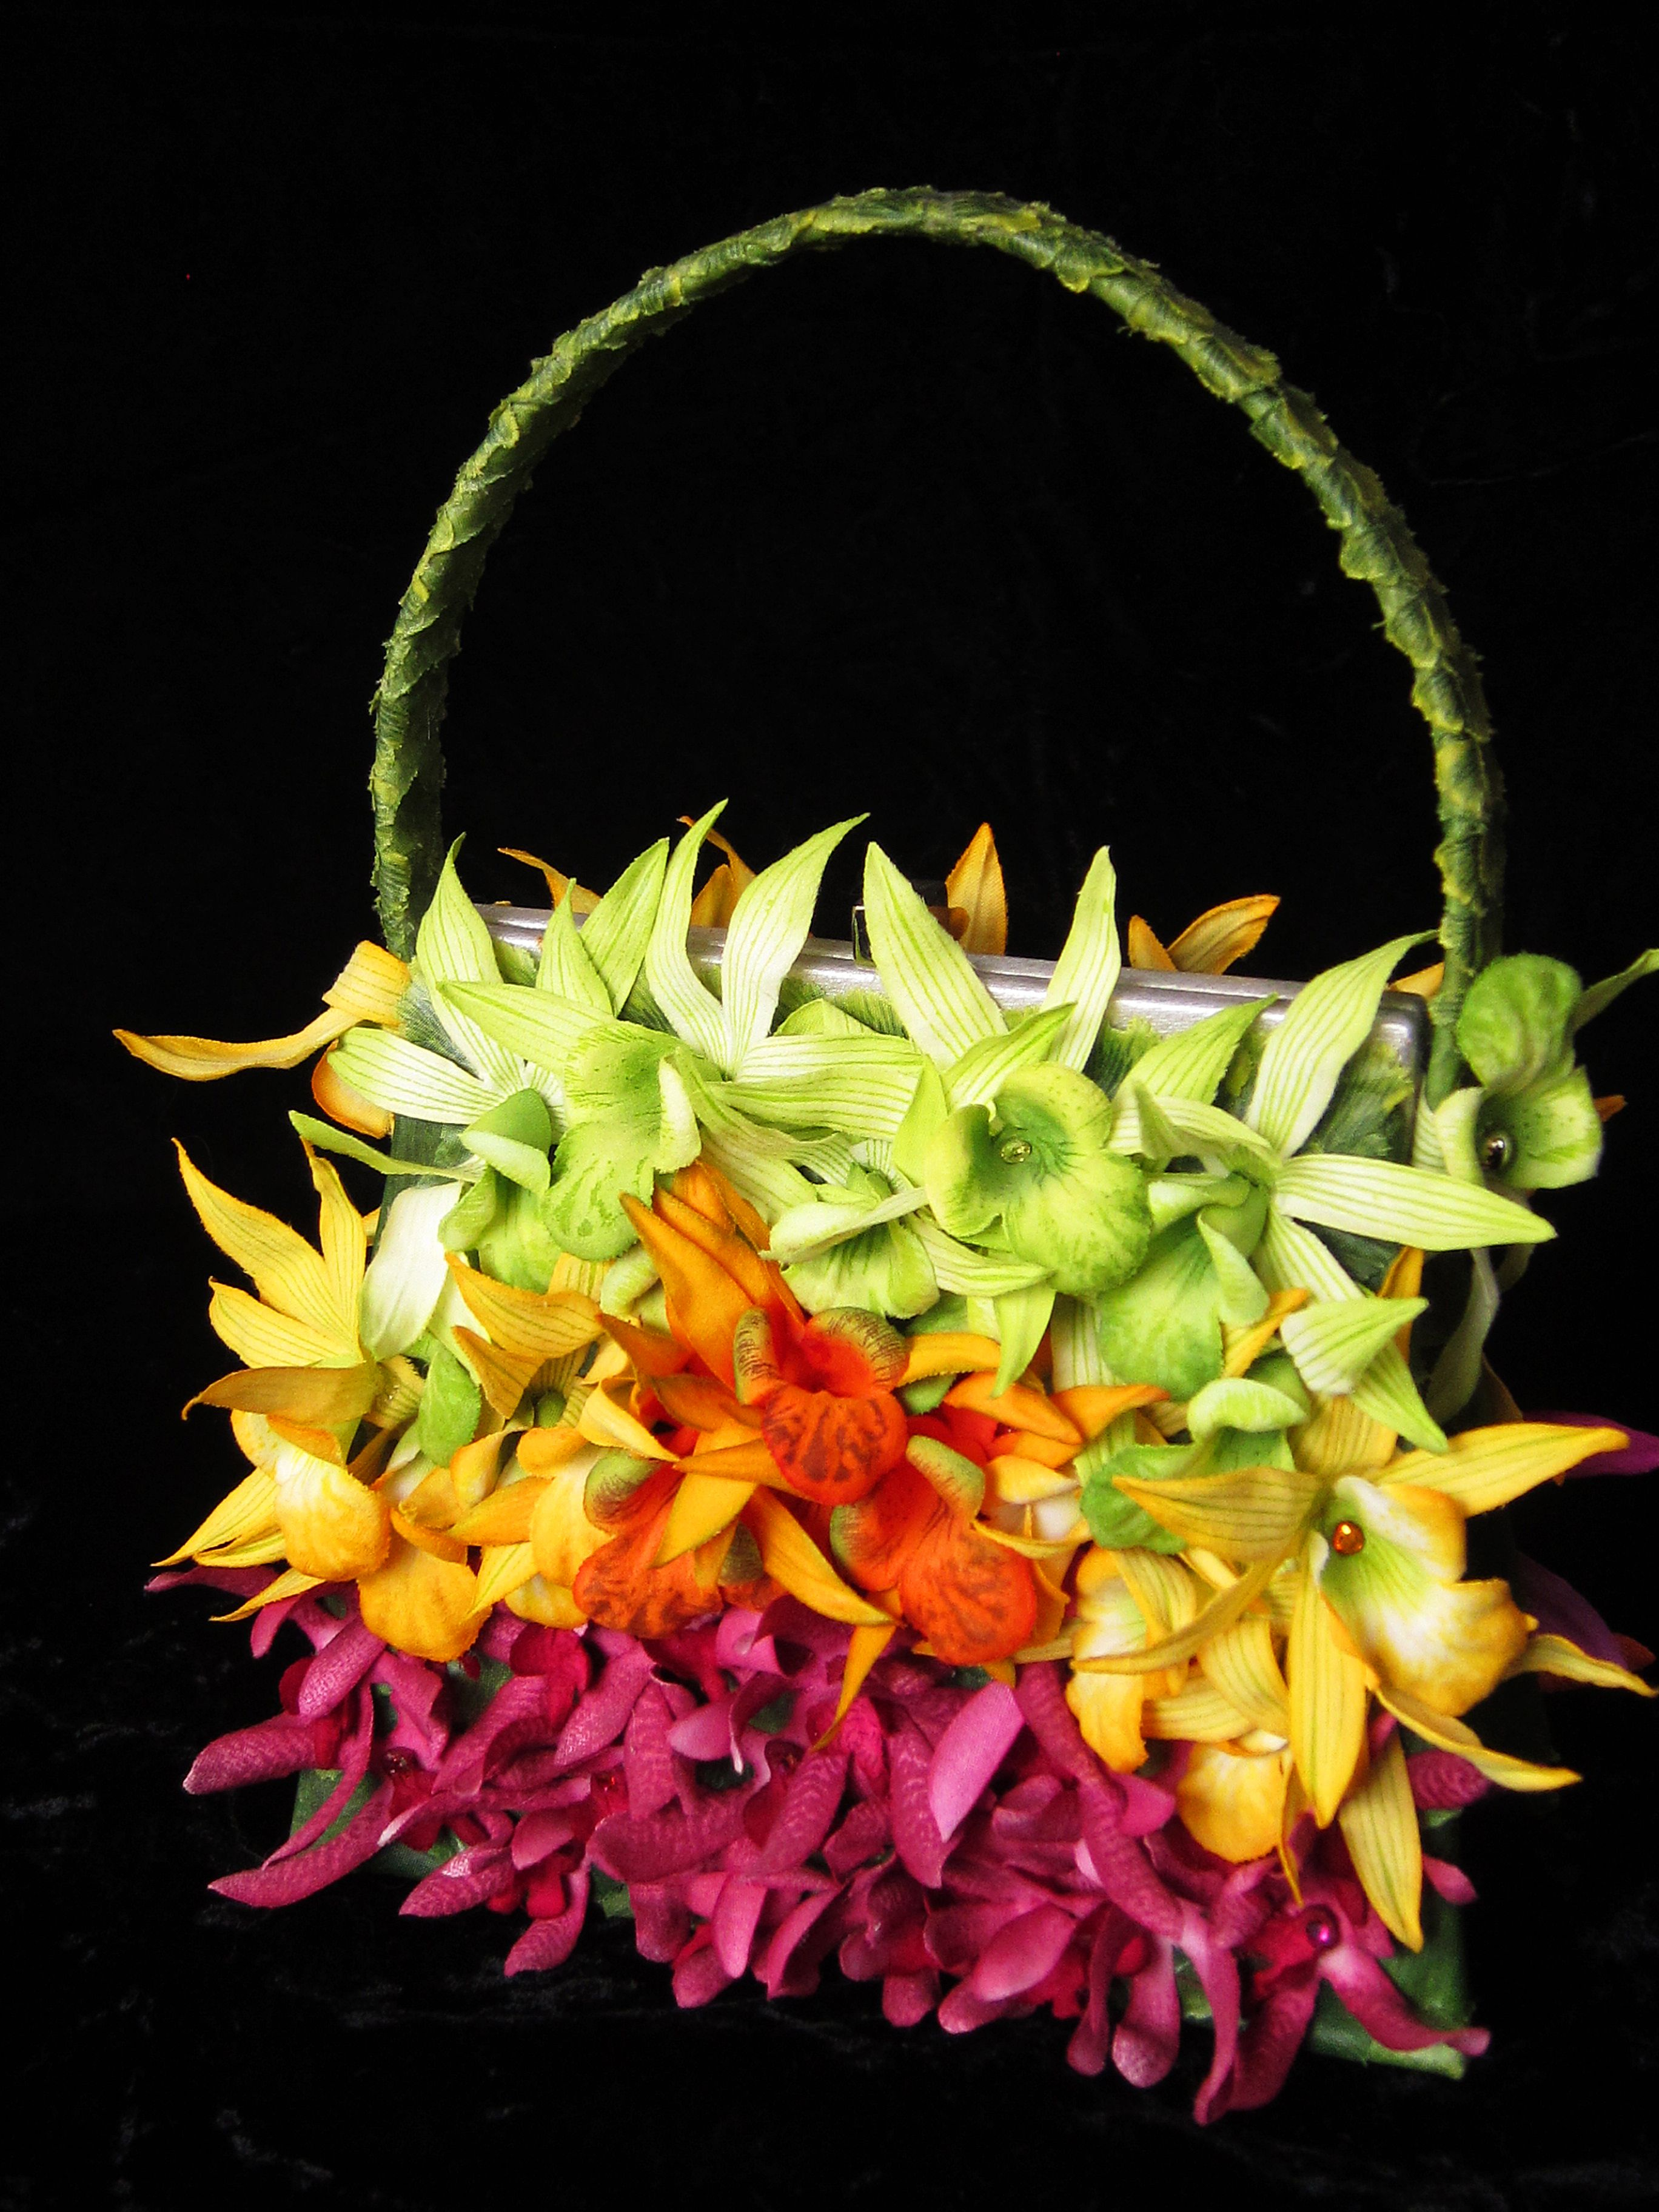 EJ STERN designs one-of-a-kind luxurious  handbags.$ 200 Constructed with the finest European couture silk/velvet flowers and leaves.